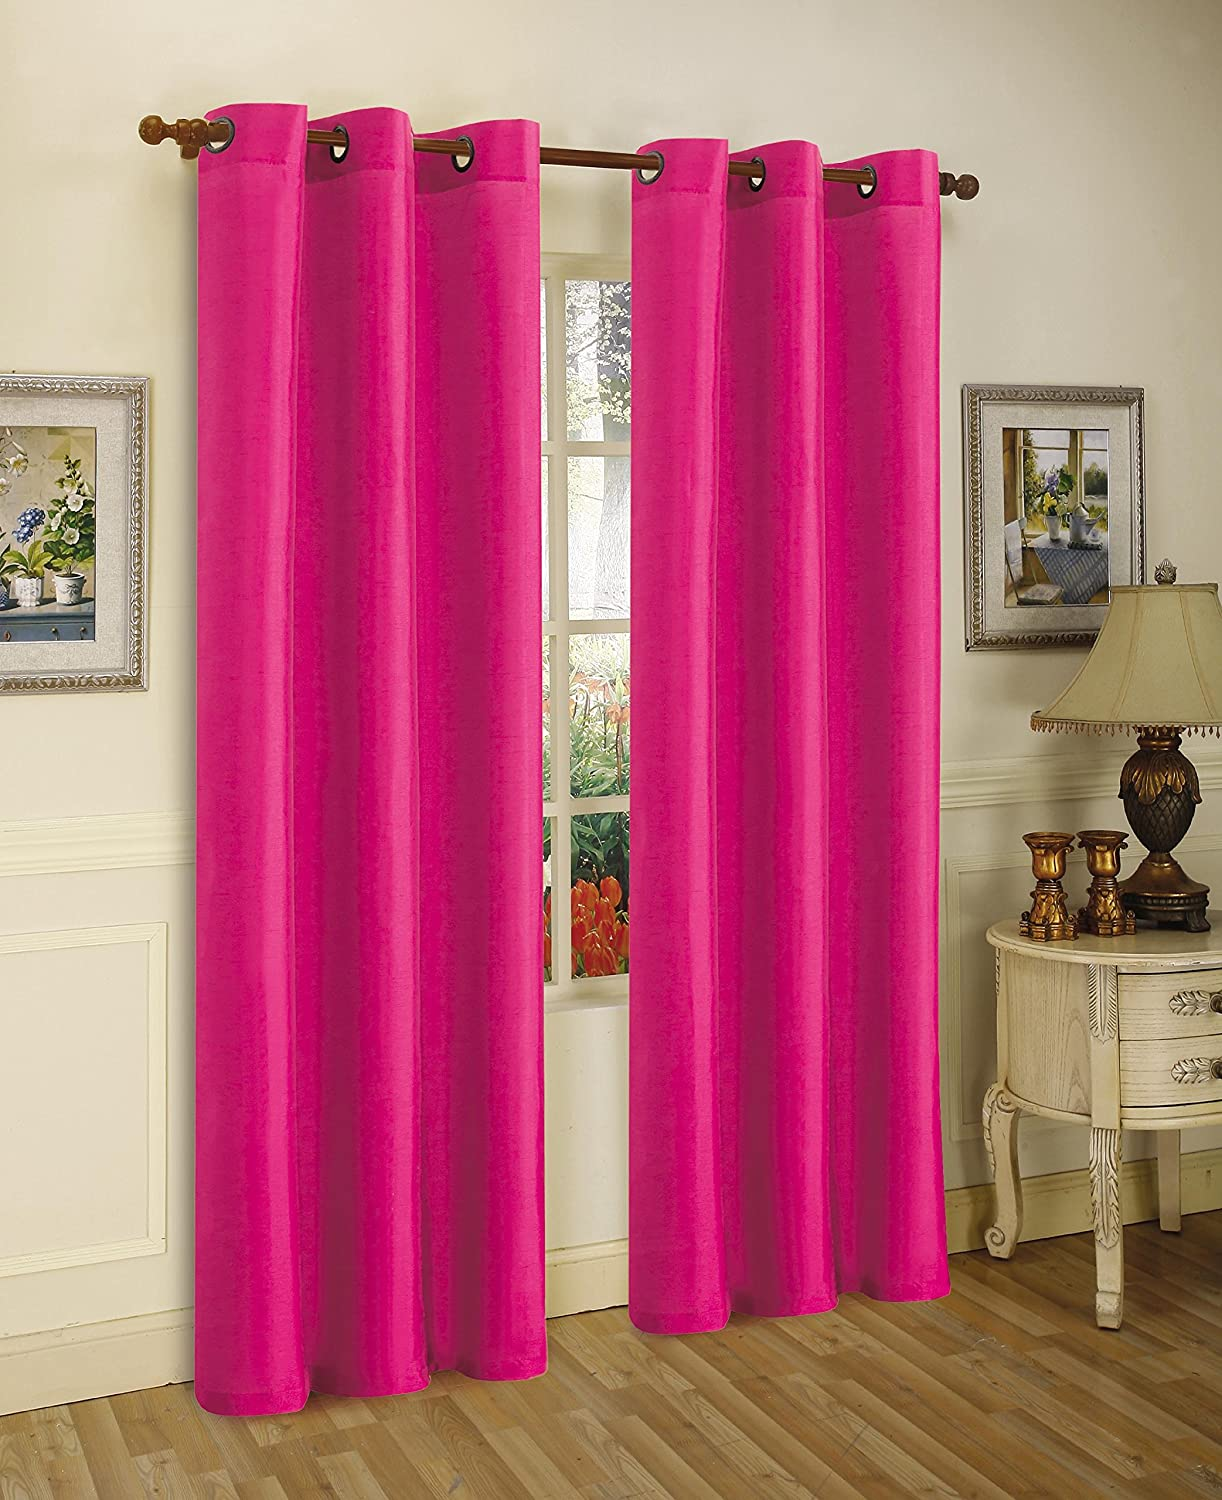 """Gorgeous HomeDIFFERENT Solid Colors & Sizes (#34) 1 Panel Solid Thermal Foam Lined Blackout Heavy Thick Window Curtain Drapes Silver Grommets (HOT Pink, 95"""" Length)"""